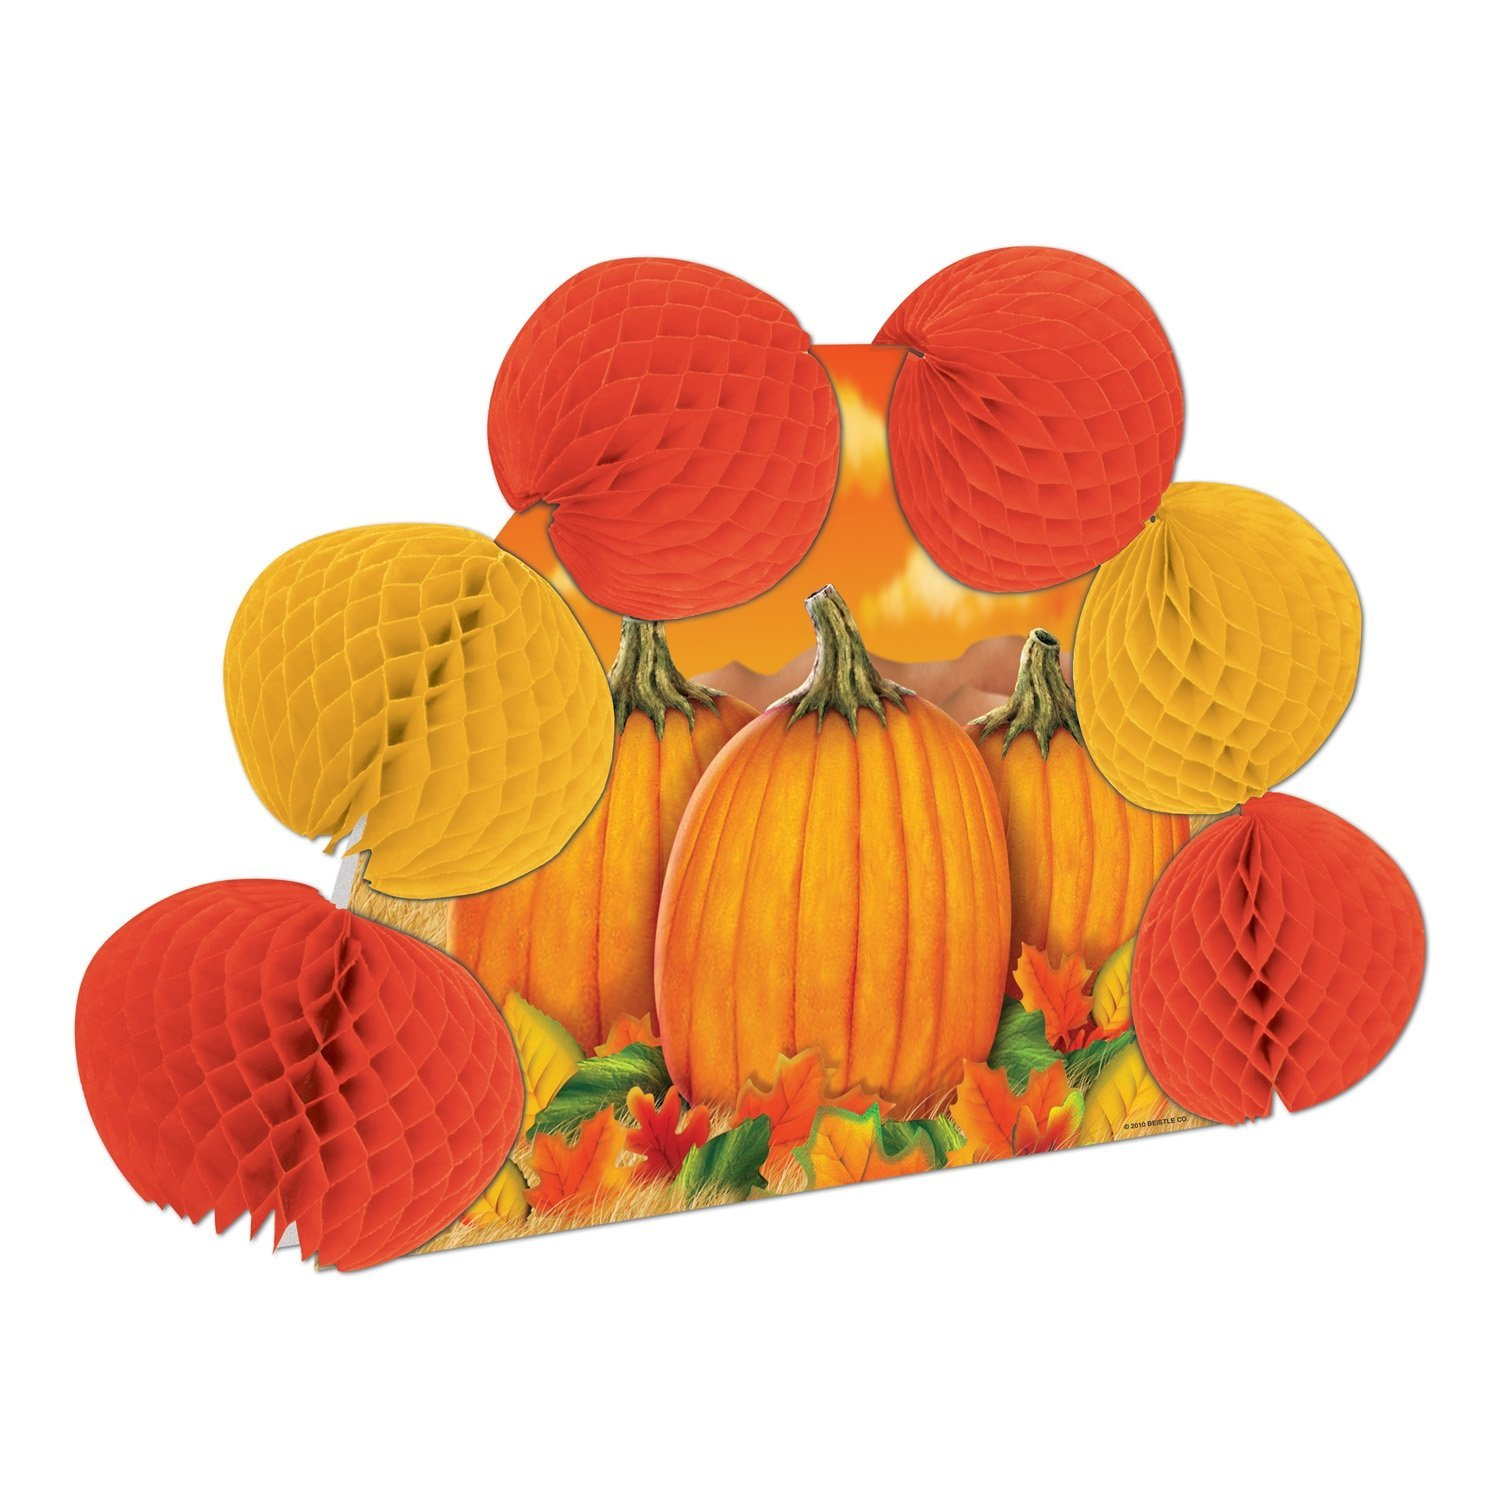 Fall Harvest Pop-Over Centerpiece Party Accessory (1 count) (1/Pkg), This item is a great value! By Beistle